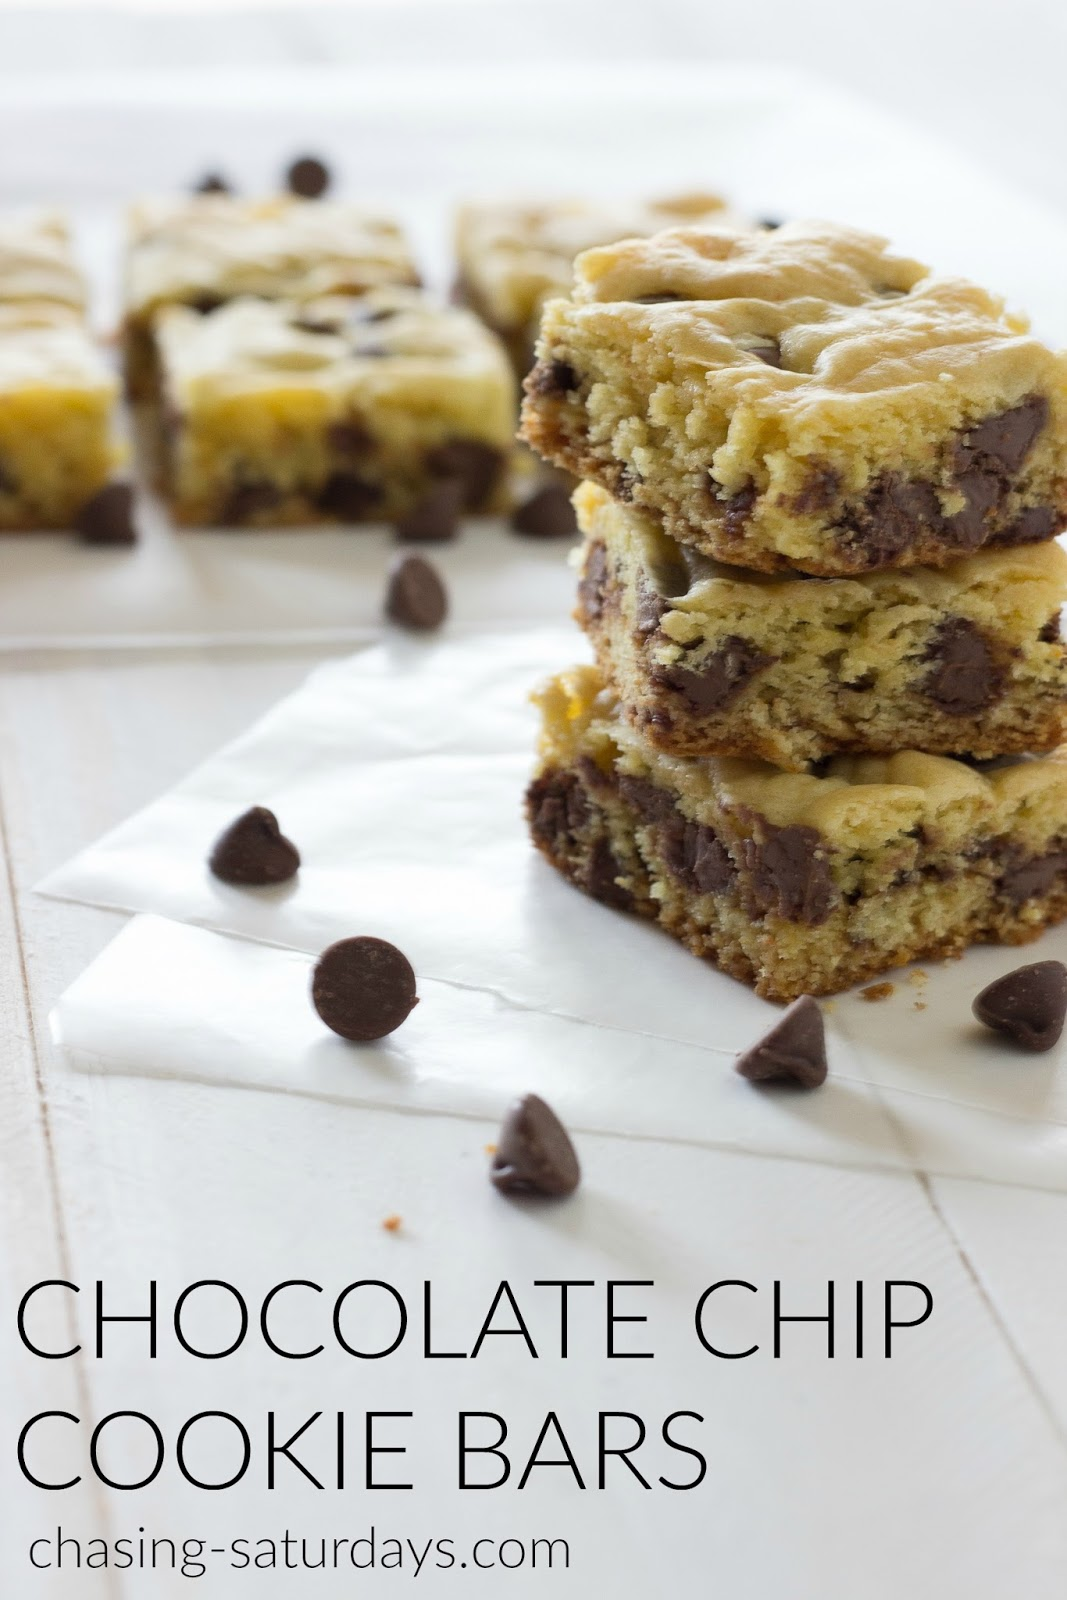 Chasing Saturdays: Chocolate Chip Cookie Bars